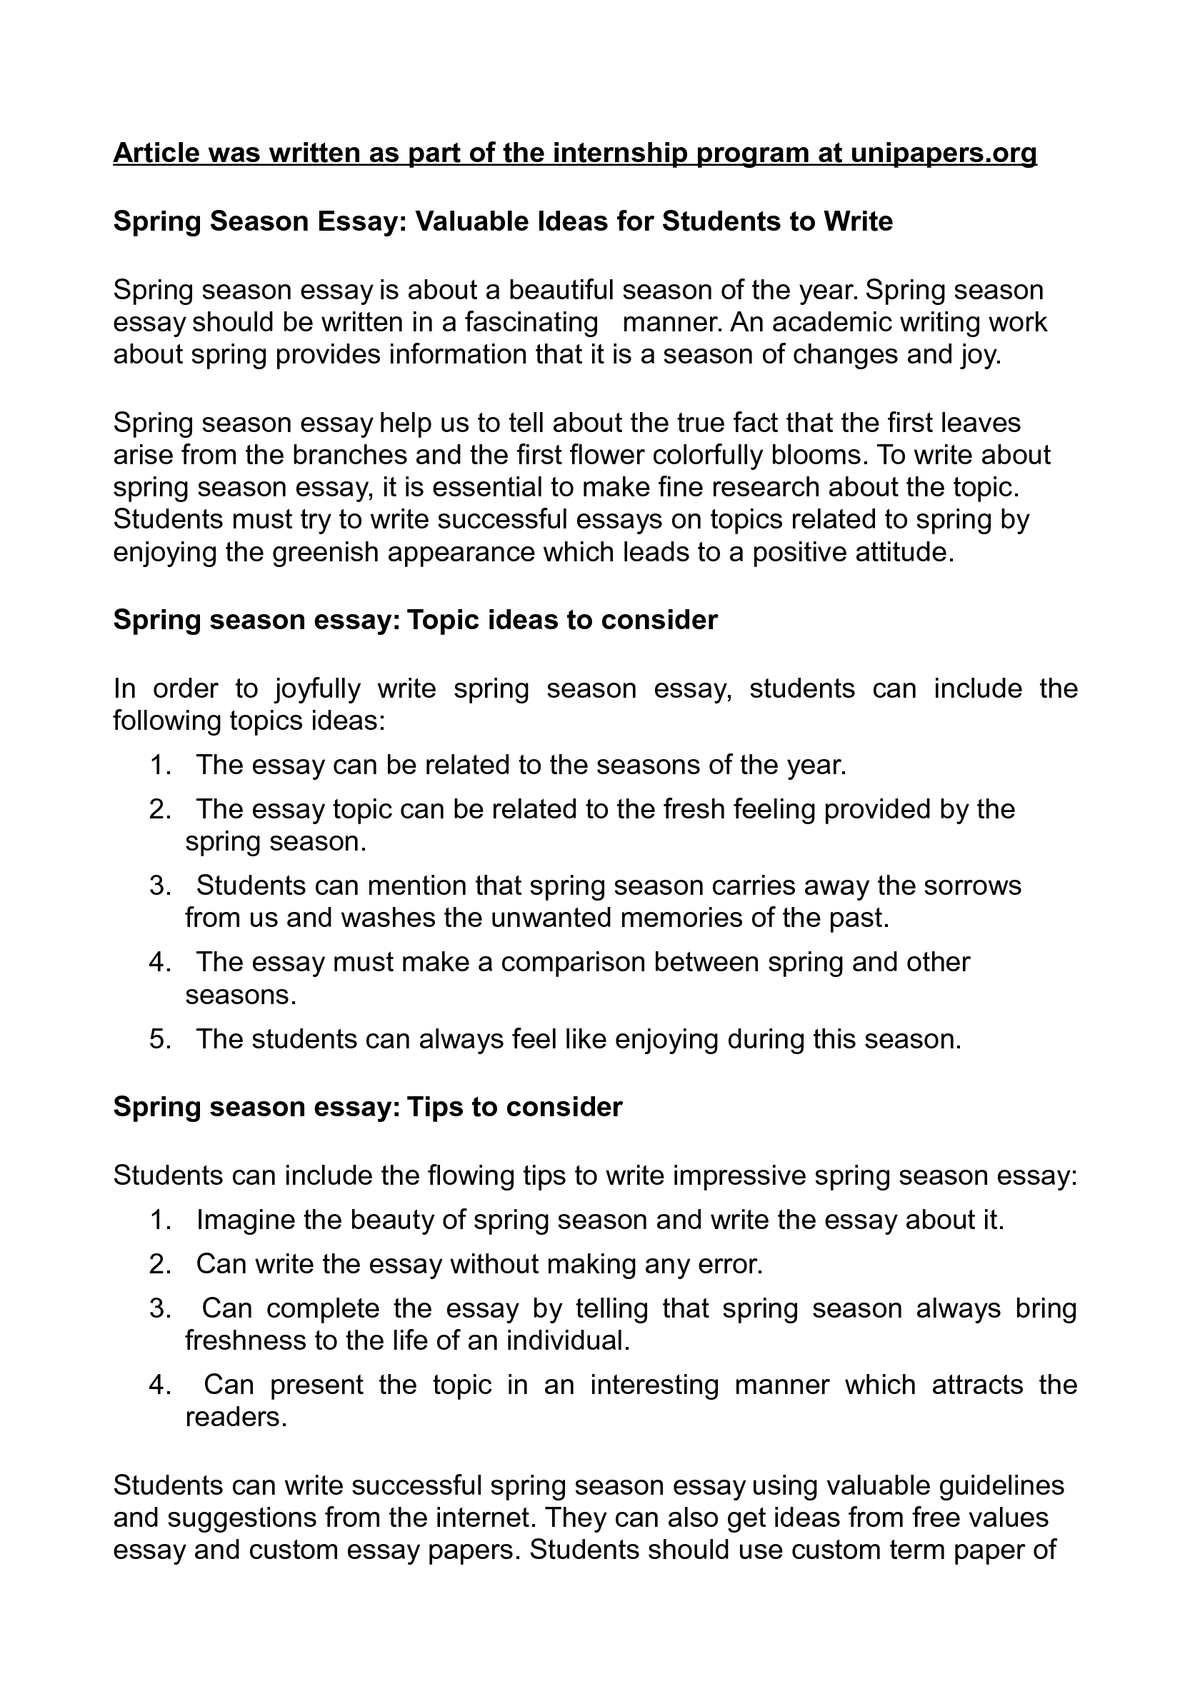 calam eacute o spring season essay valuable ideas for students to write